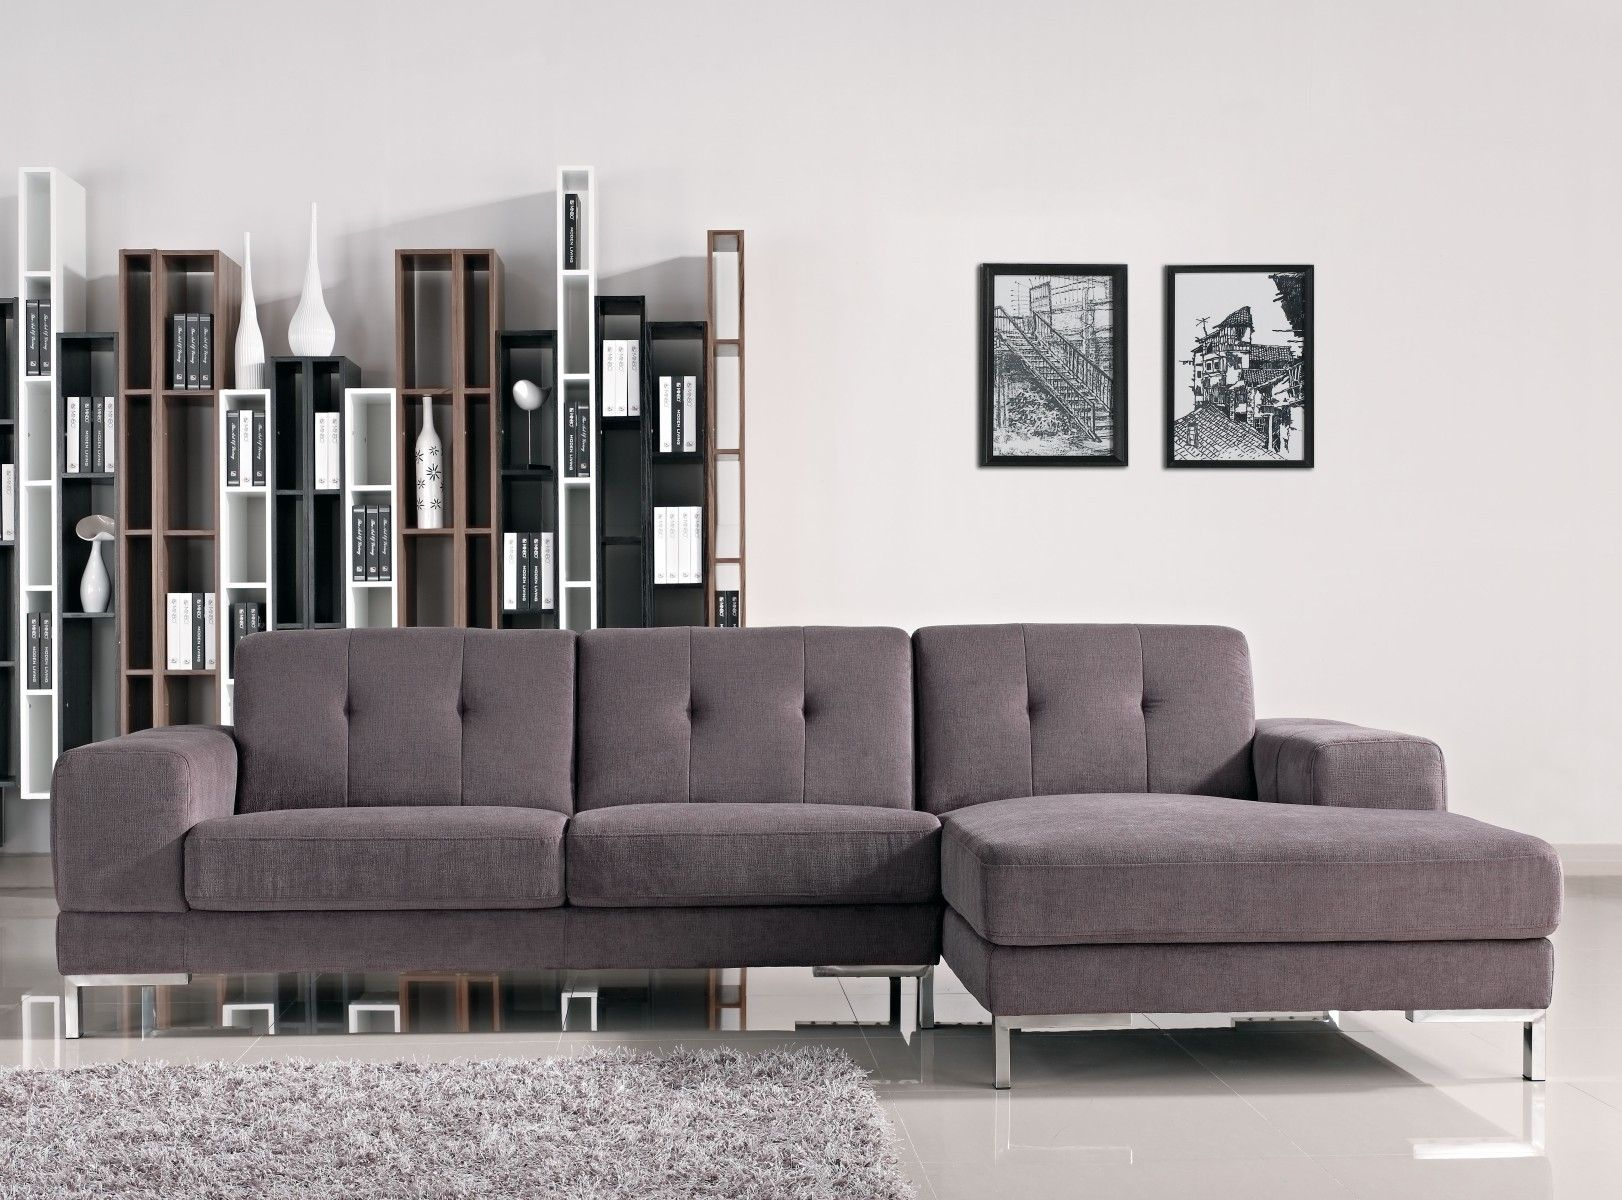 forli l shape gray fabric sectional sofa | grey fabric, sectional